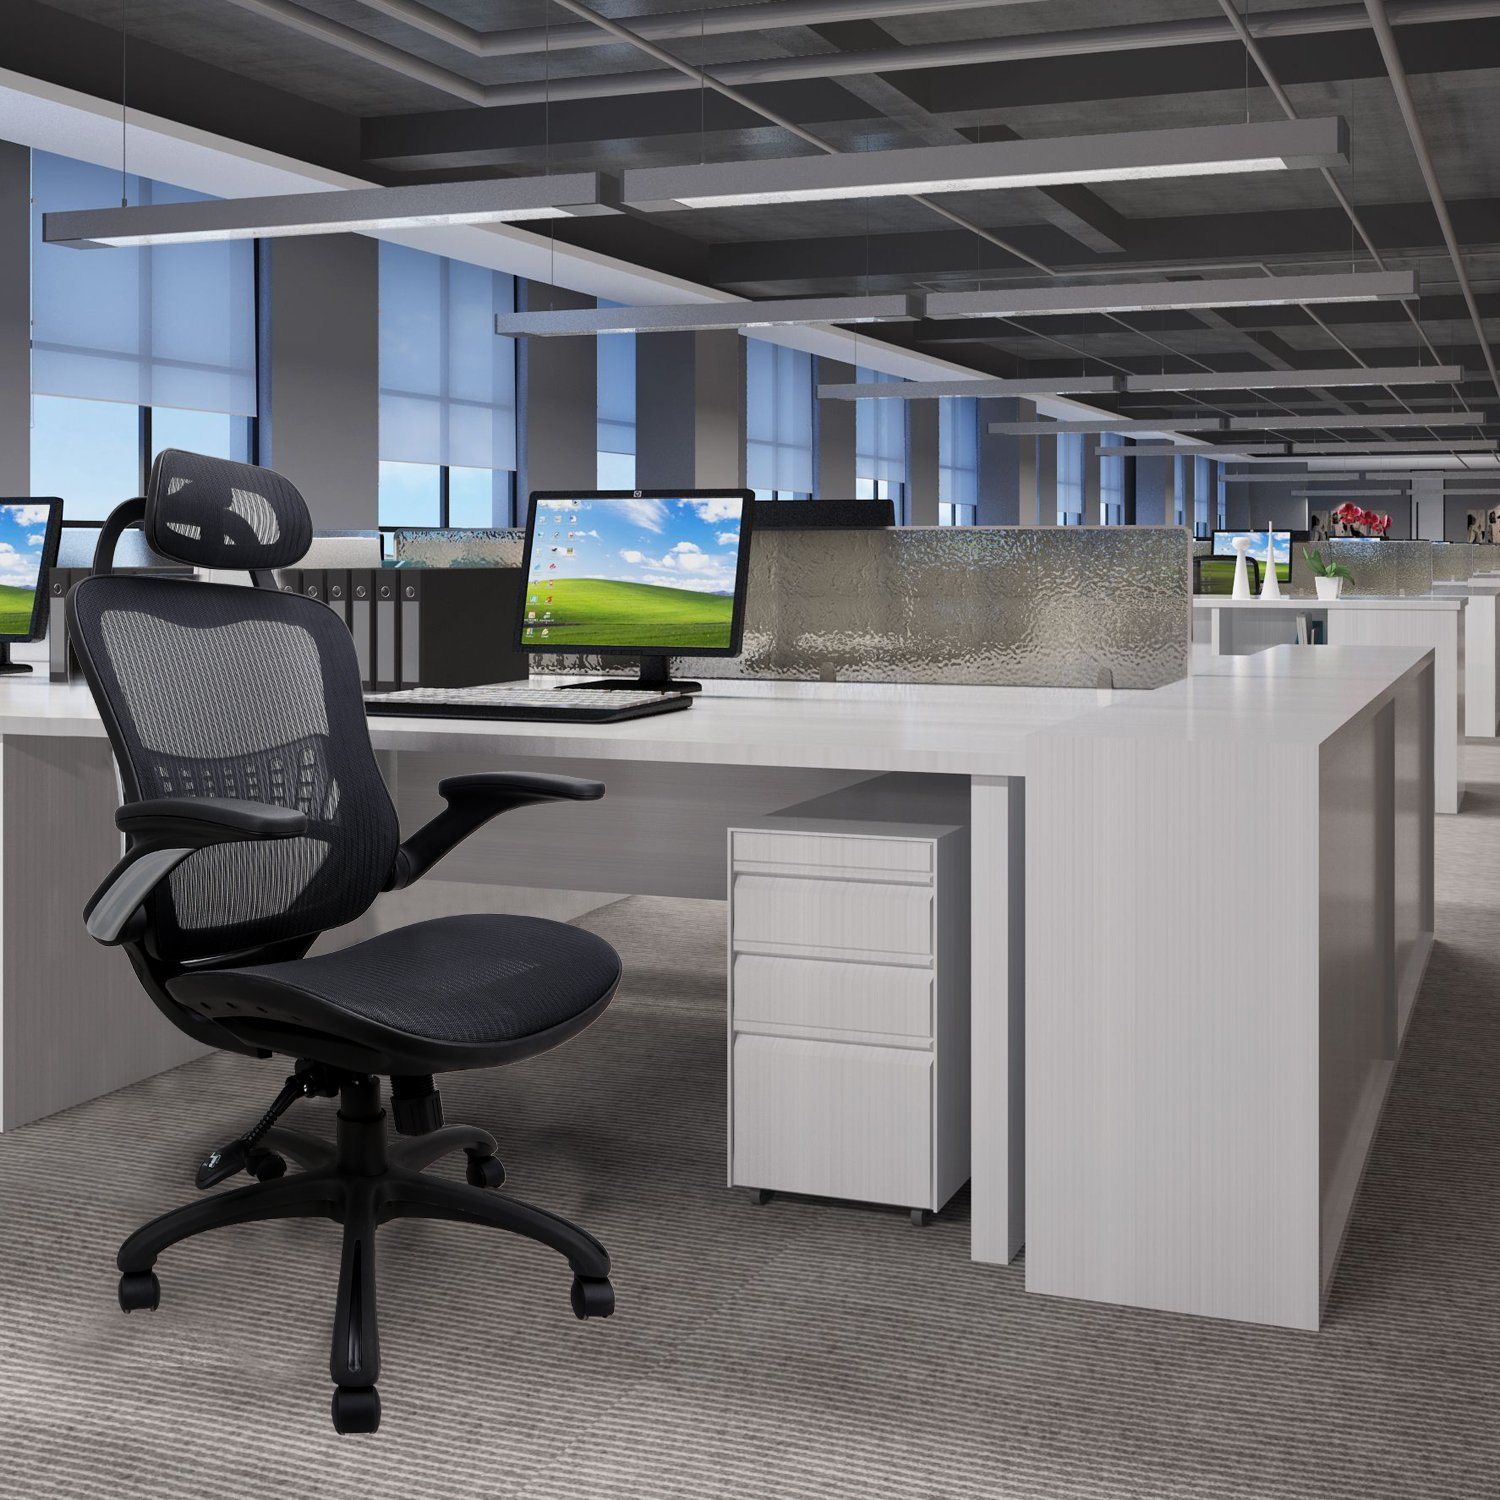 Komene Ergonomic Chairs for Office &Home: Passed BIFMA/SGS Weight Support Over 300Ibs,The Most Comfortable Mesh Cushion&High Back-Adjustable Headrest Backrest,Flip-up Armrests,360-Degree Swivel Chairs by Komene (Image #6)